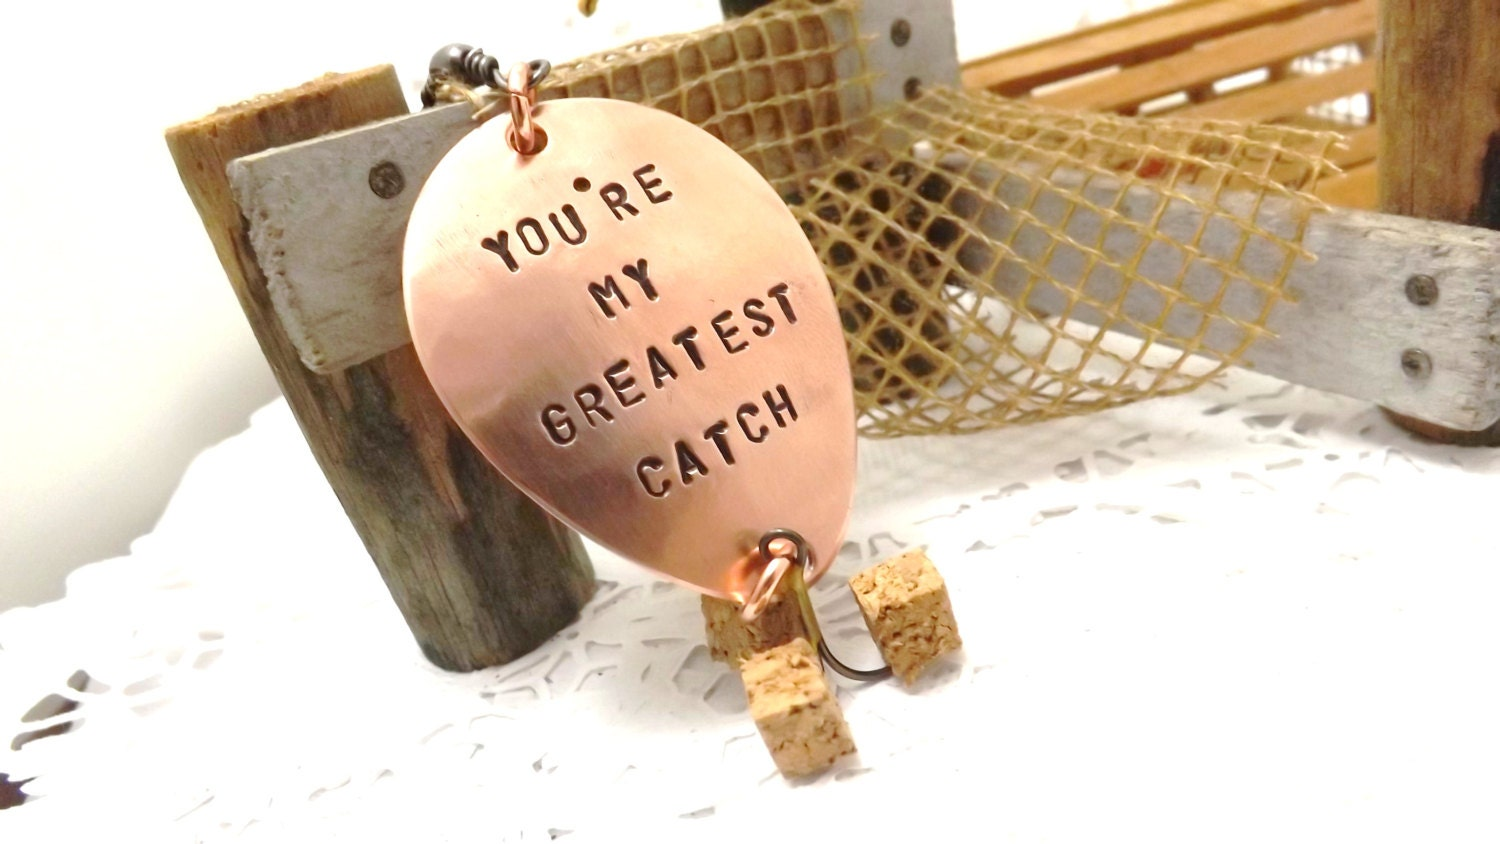 Fishing lure you 39 re my greatest catch personalized custom for Personalized fishing lure